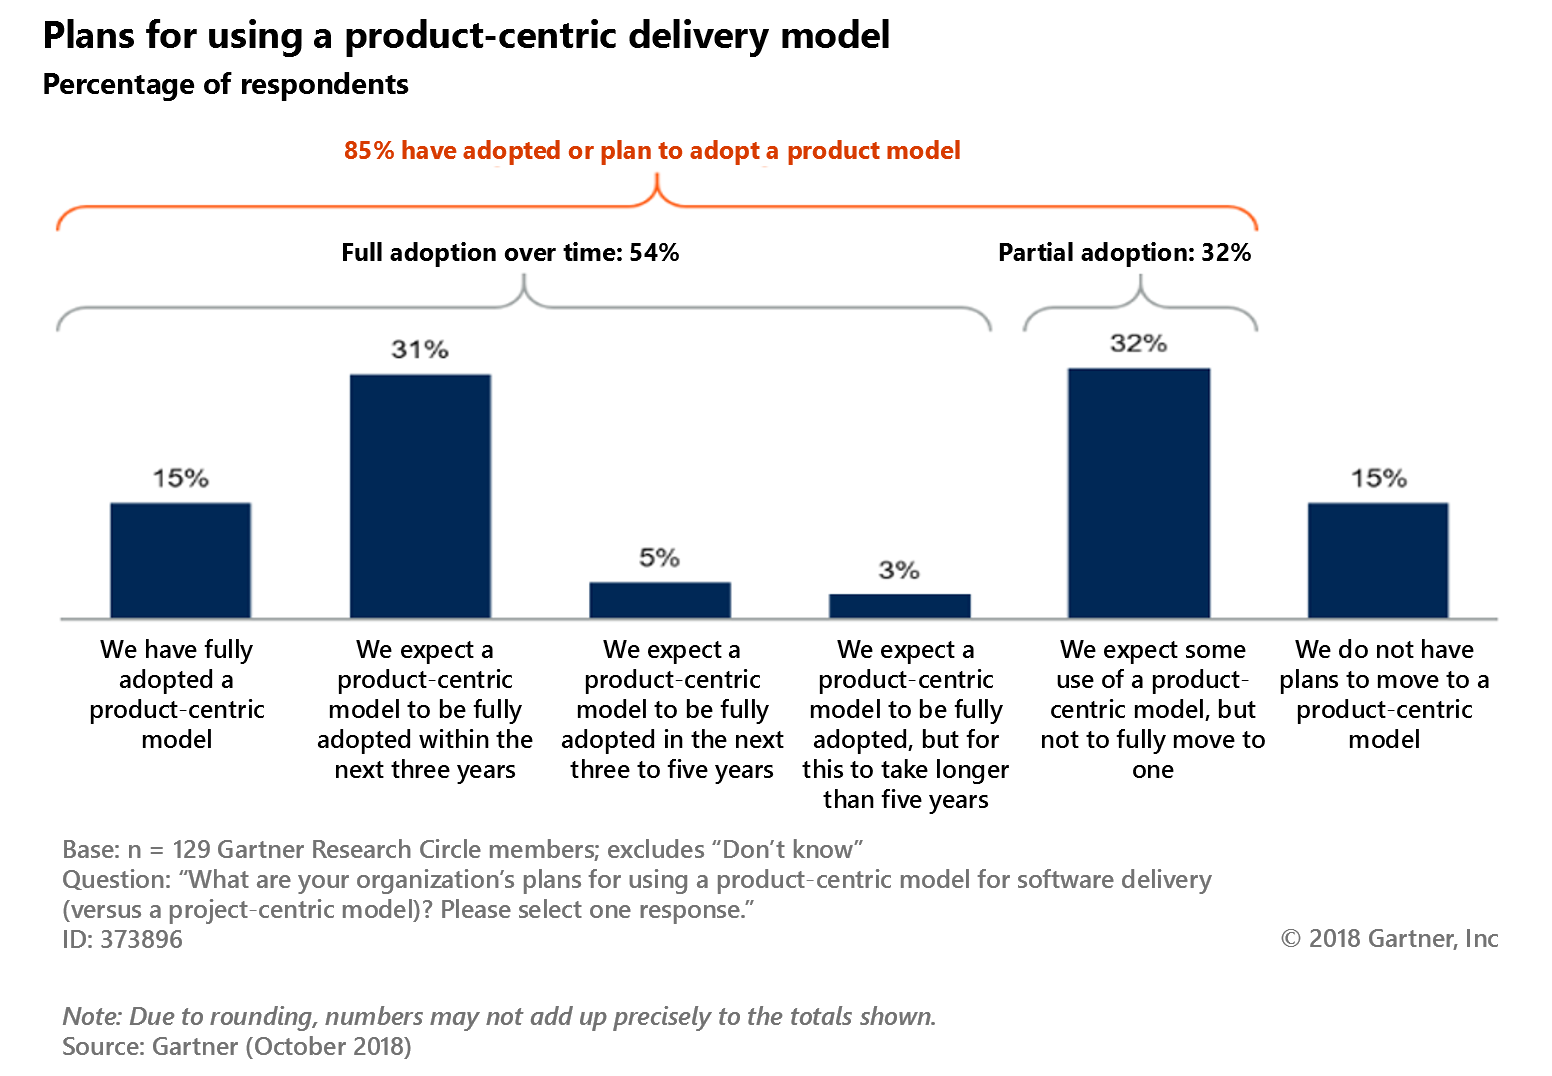 Diagram depicts product-centric model adoption over time. In total, 85% of the respondents have adopted or plan to adopt a product-centric model. Full adoption over time happens for 54% of the respondents, and partial adoption for 32%. 15% of the respondents say they have fully adopted a product-centric model. 31% expect it to be fully adopted within the next three years. 5% expect to adopt the product-centric model in the next three to five years. 3% expect the adoption process to take longer than five years. 32% of the respondents expect some use of a product-centric model, but not to fully move to one. 15% of the respondents do not have plans to move to a product-centric model. The survey was conducted on 129 Gartner Research Circle members. The question was: What are your organization's plans for using a product-centric model for software delivery (versus a project-centric model)? Please select one response.